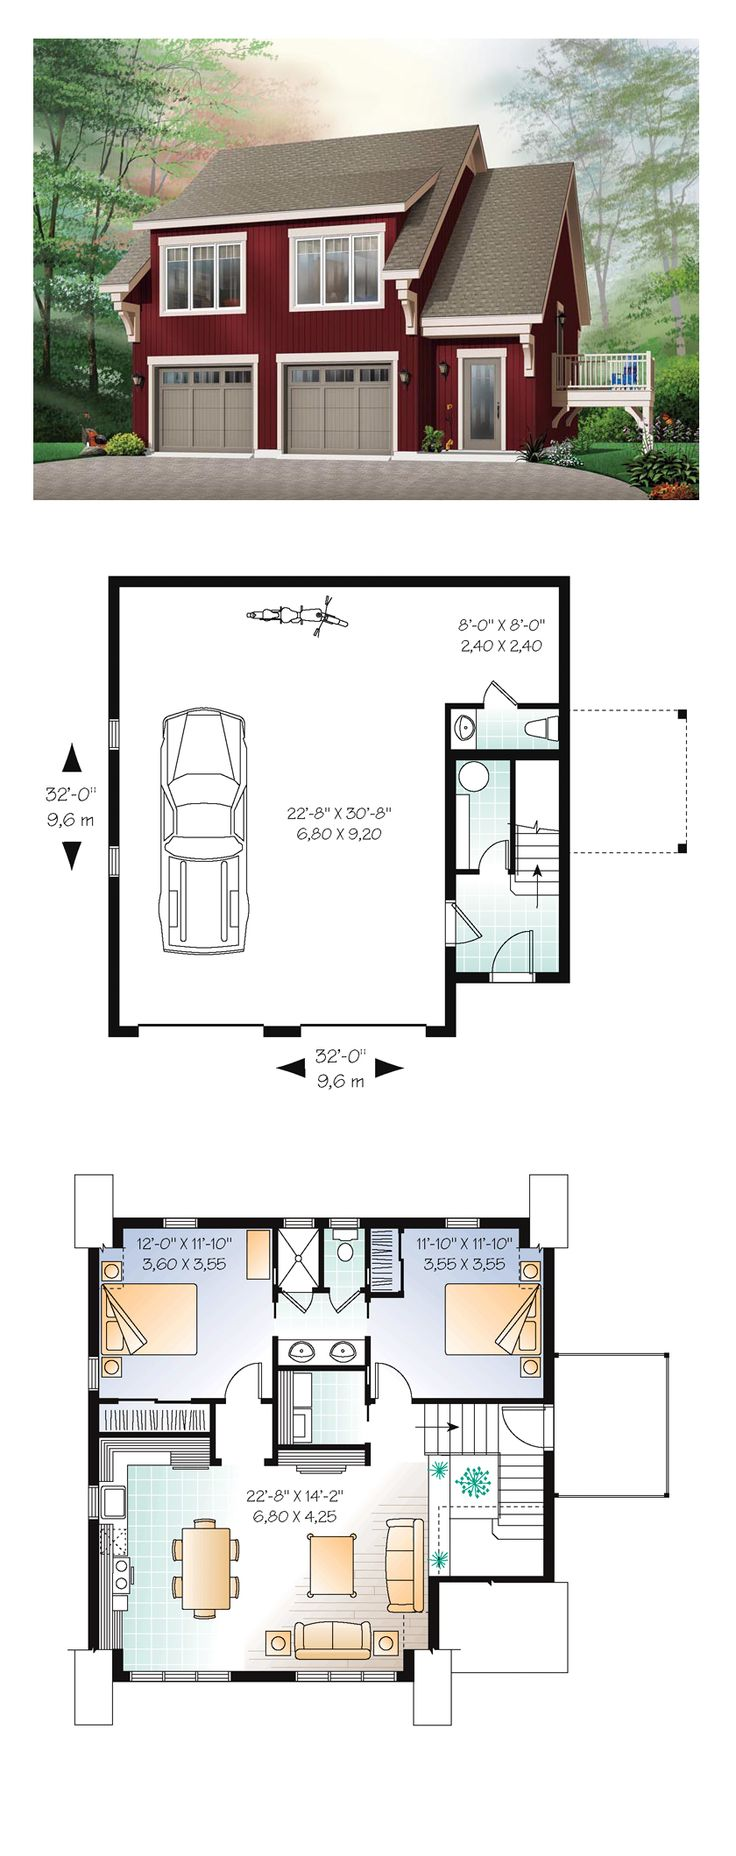 Small House Plans With Loft Bedroom 17 Best Ideas About Garage Apartment Plans On Pinterest Garage